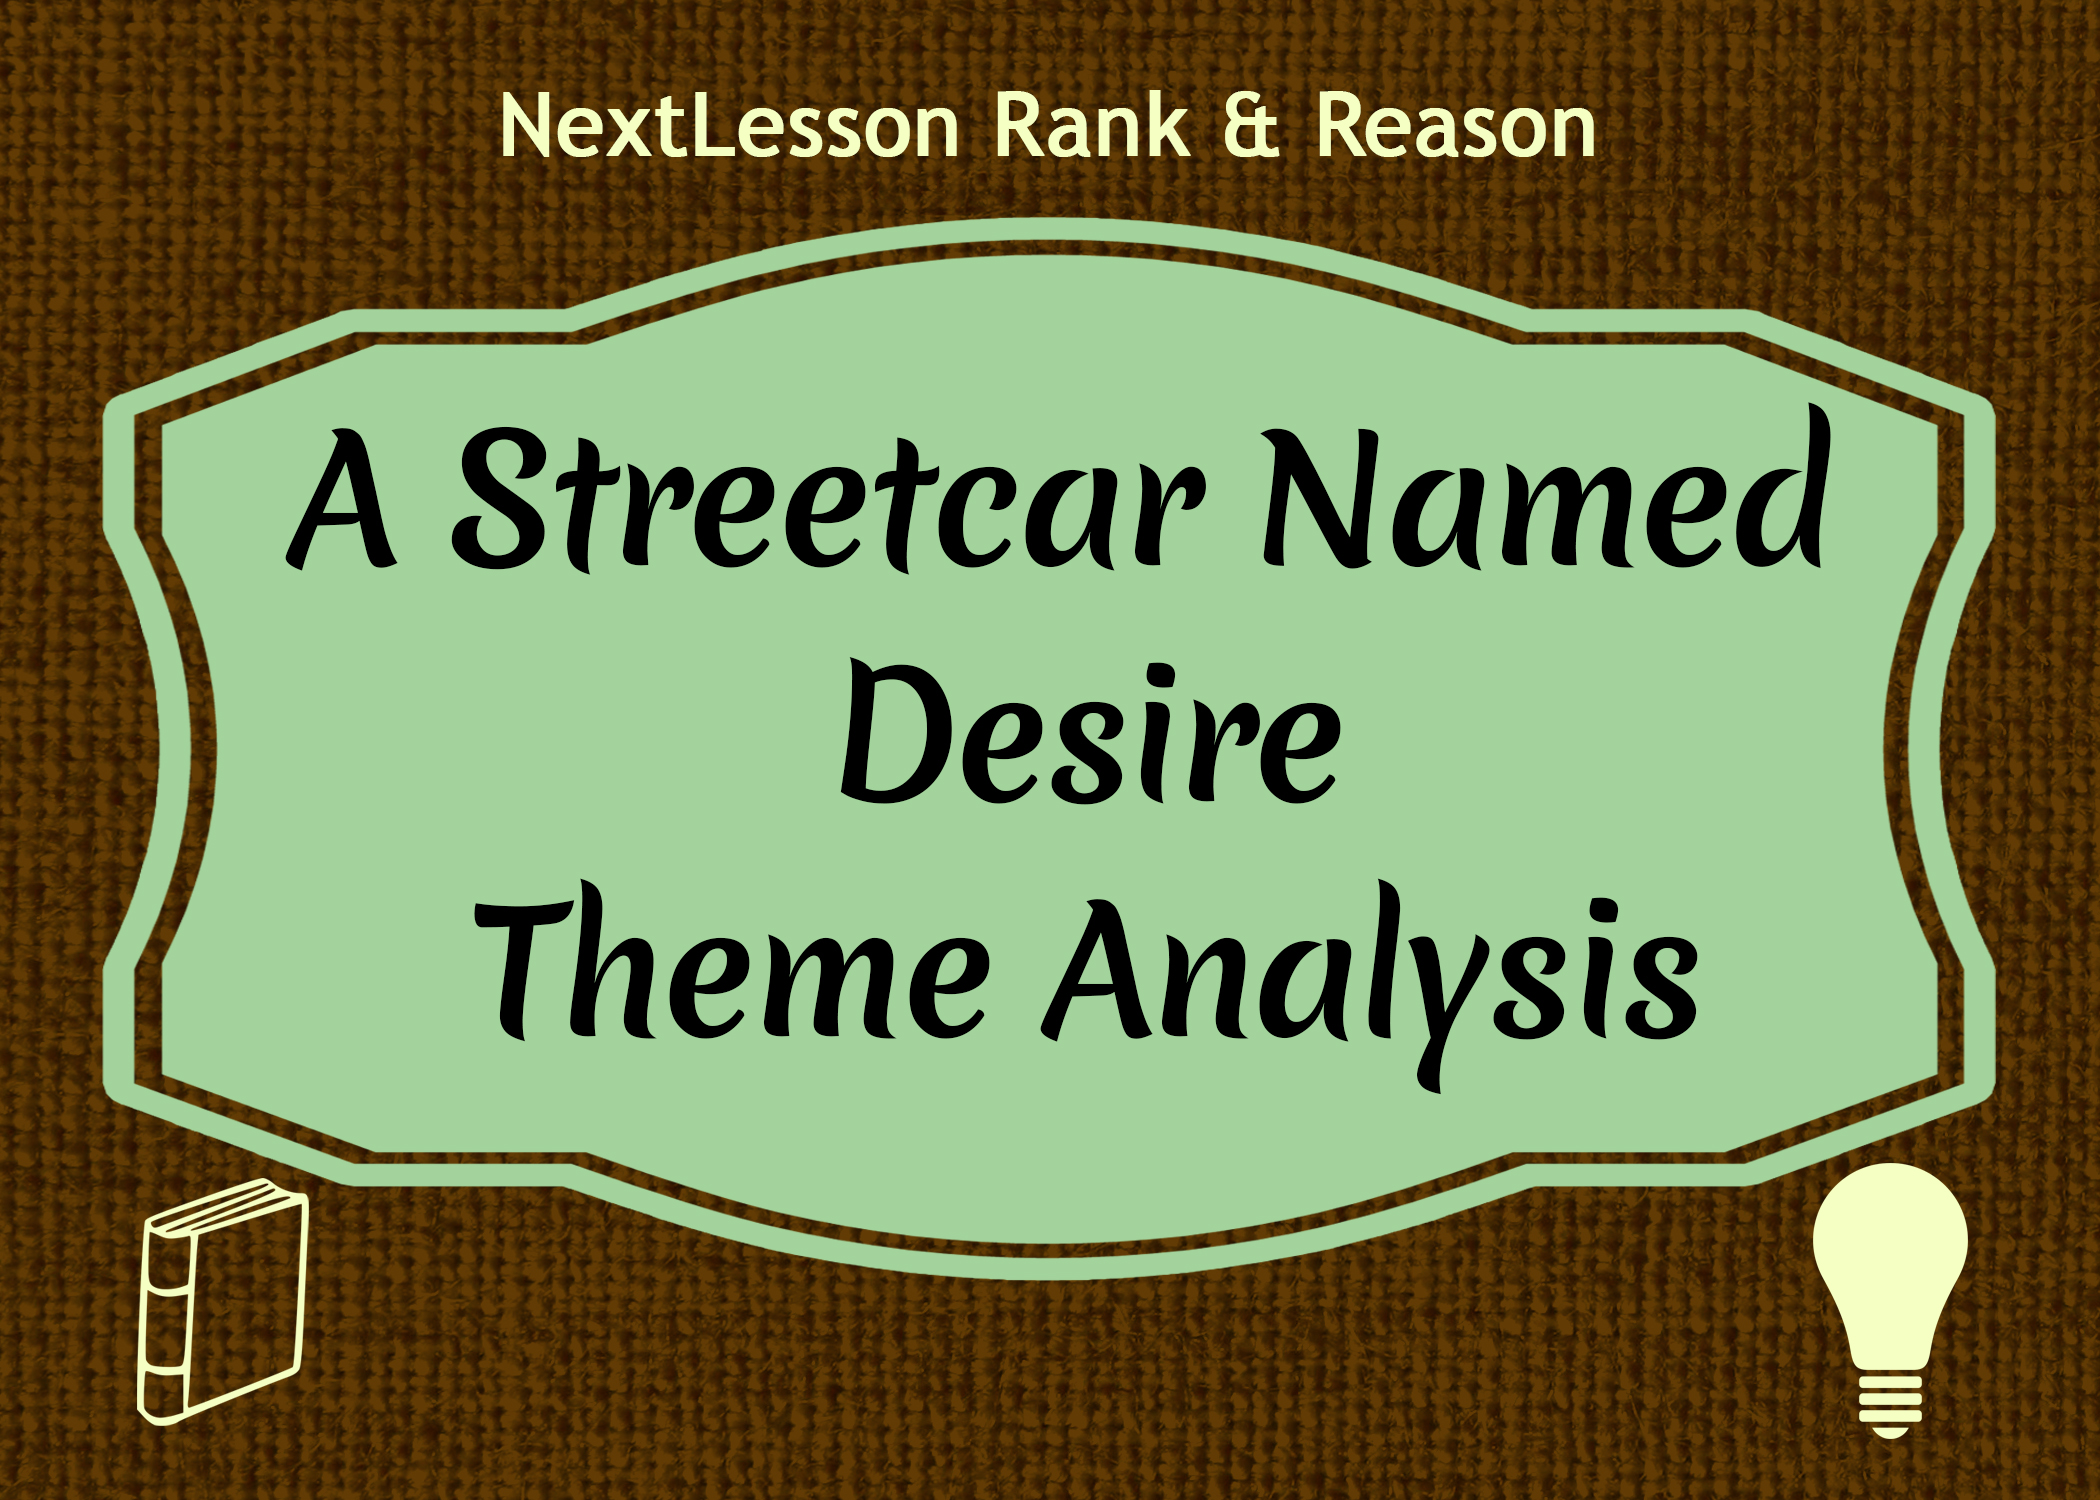 essay streetcar named desire theme